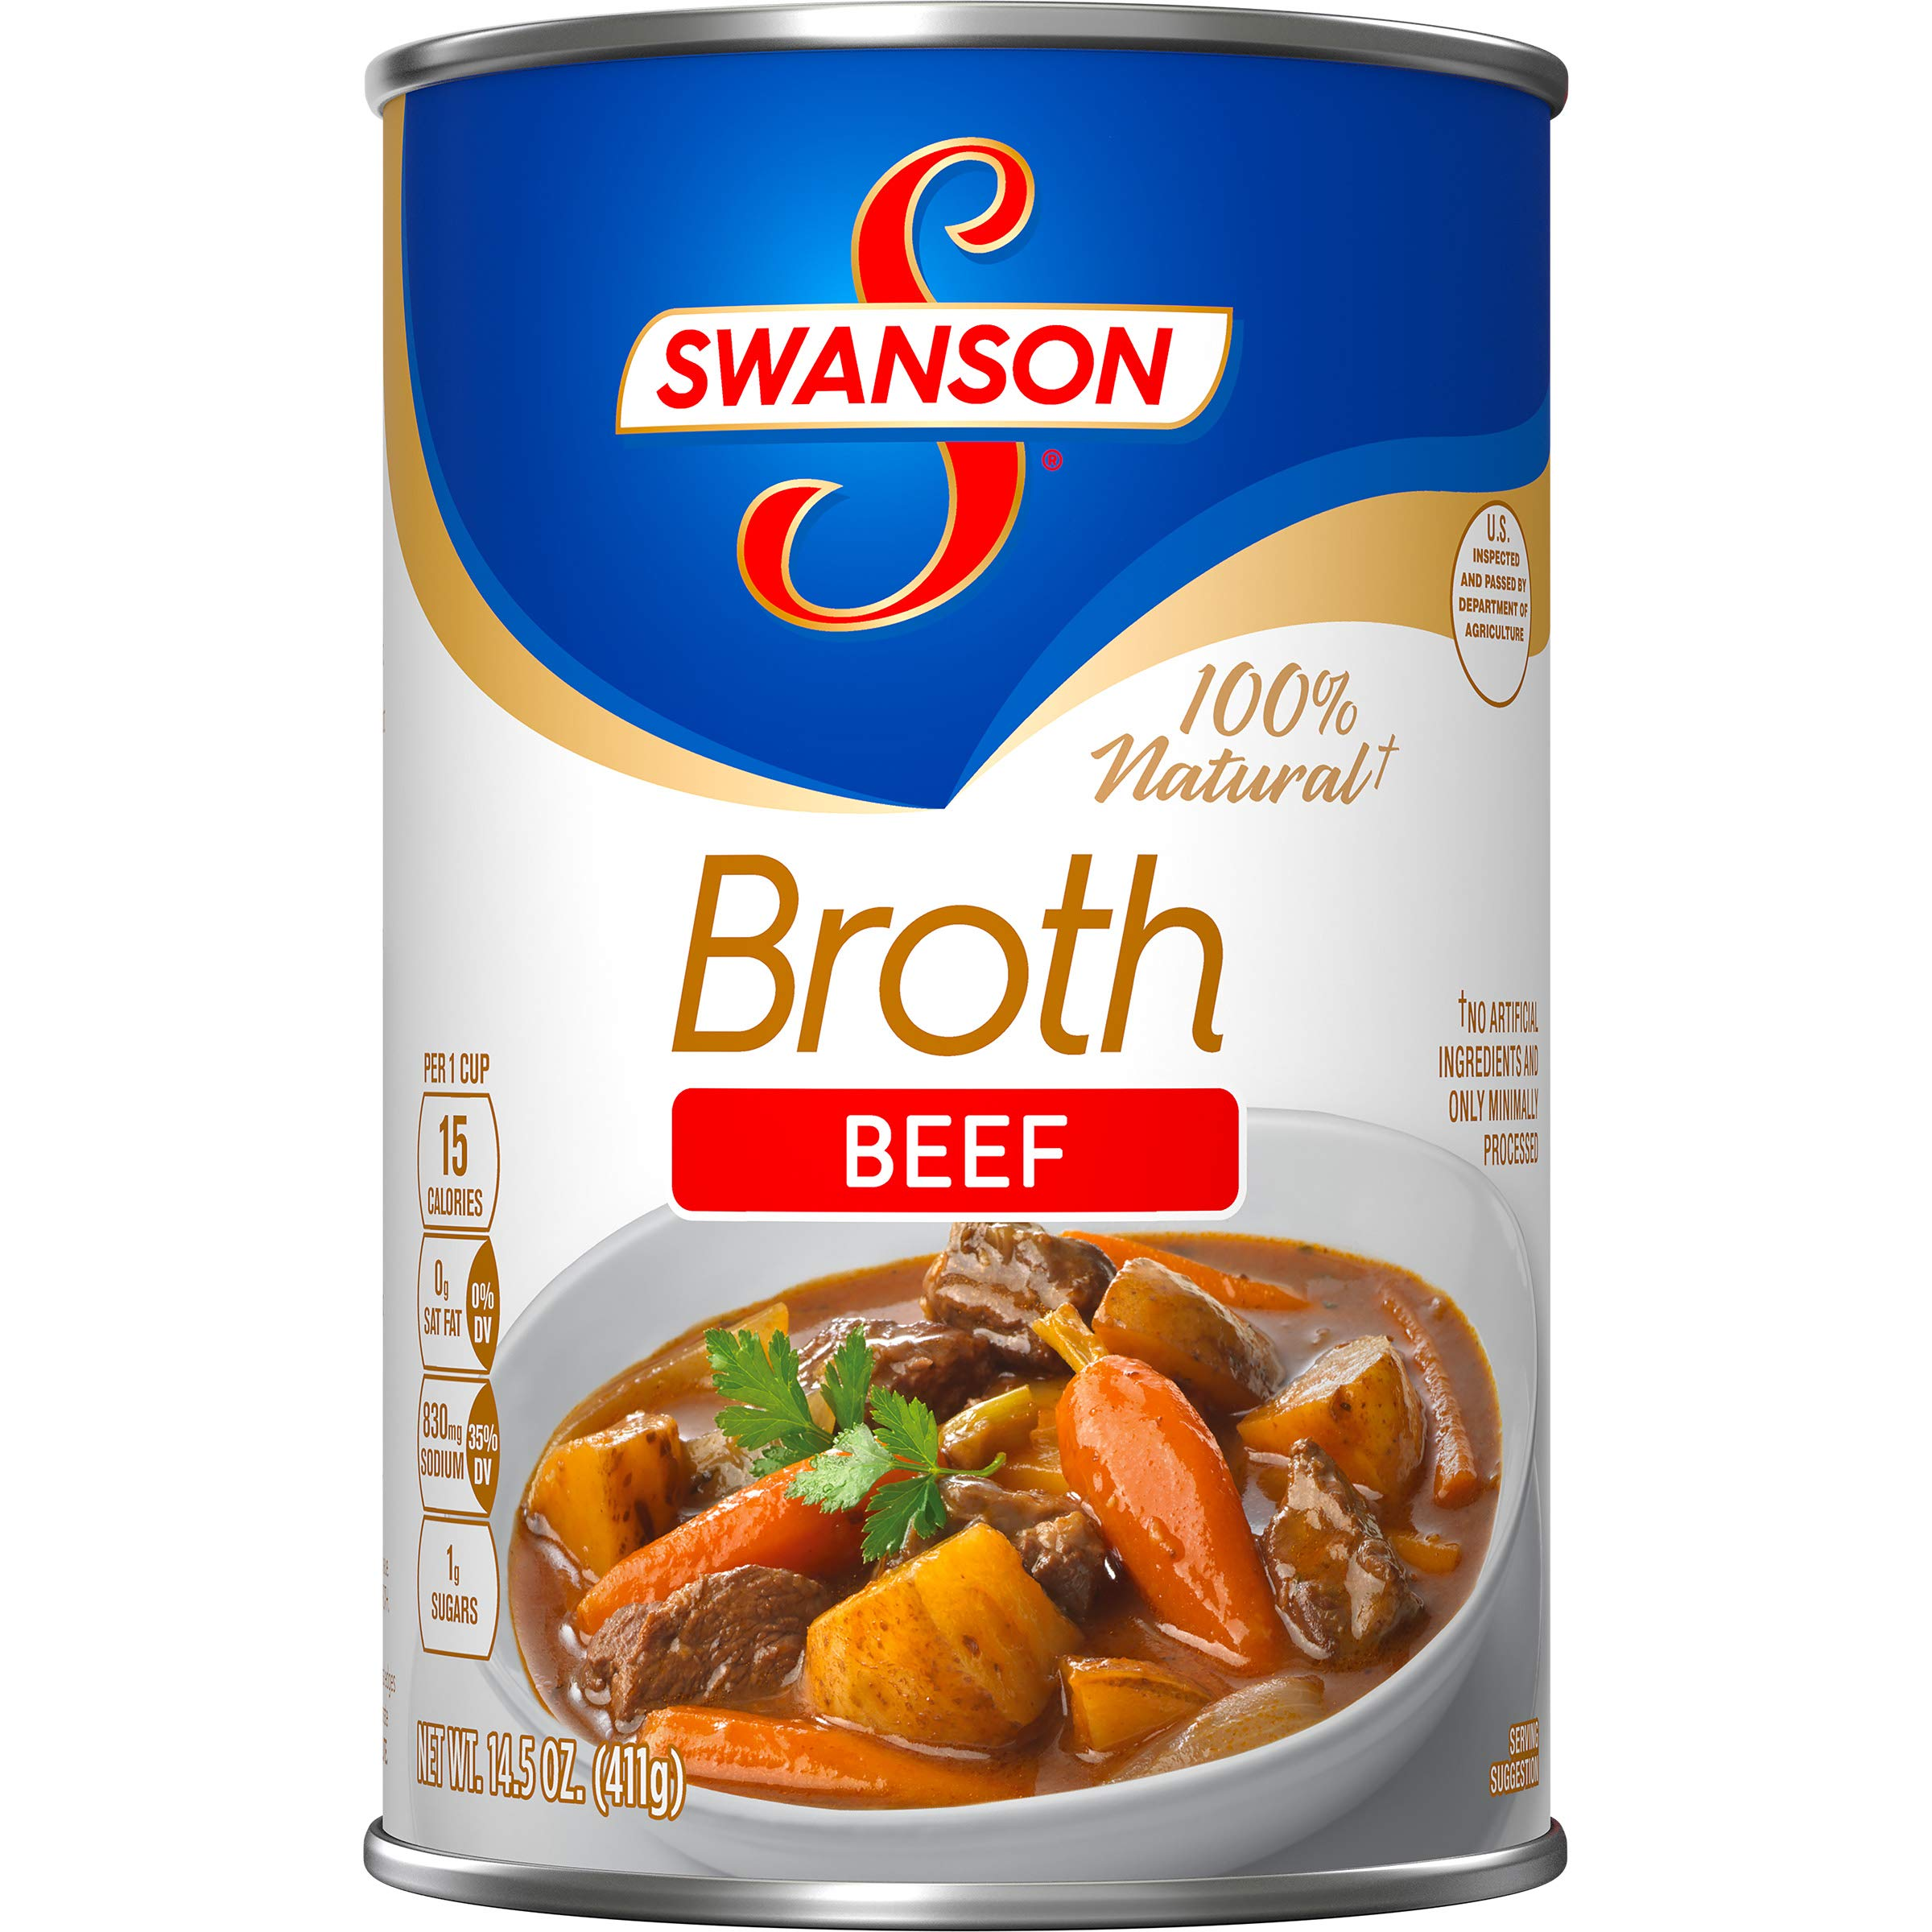 Swanson Beef Broth, 14.5 oz. Can